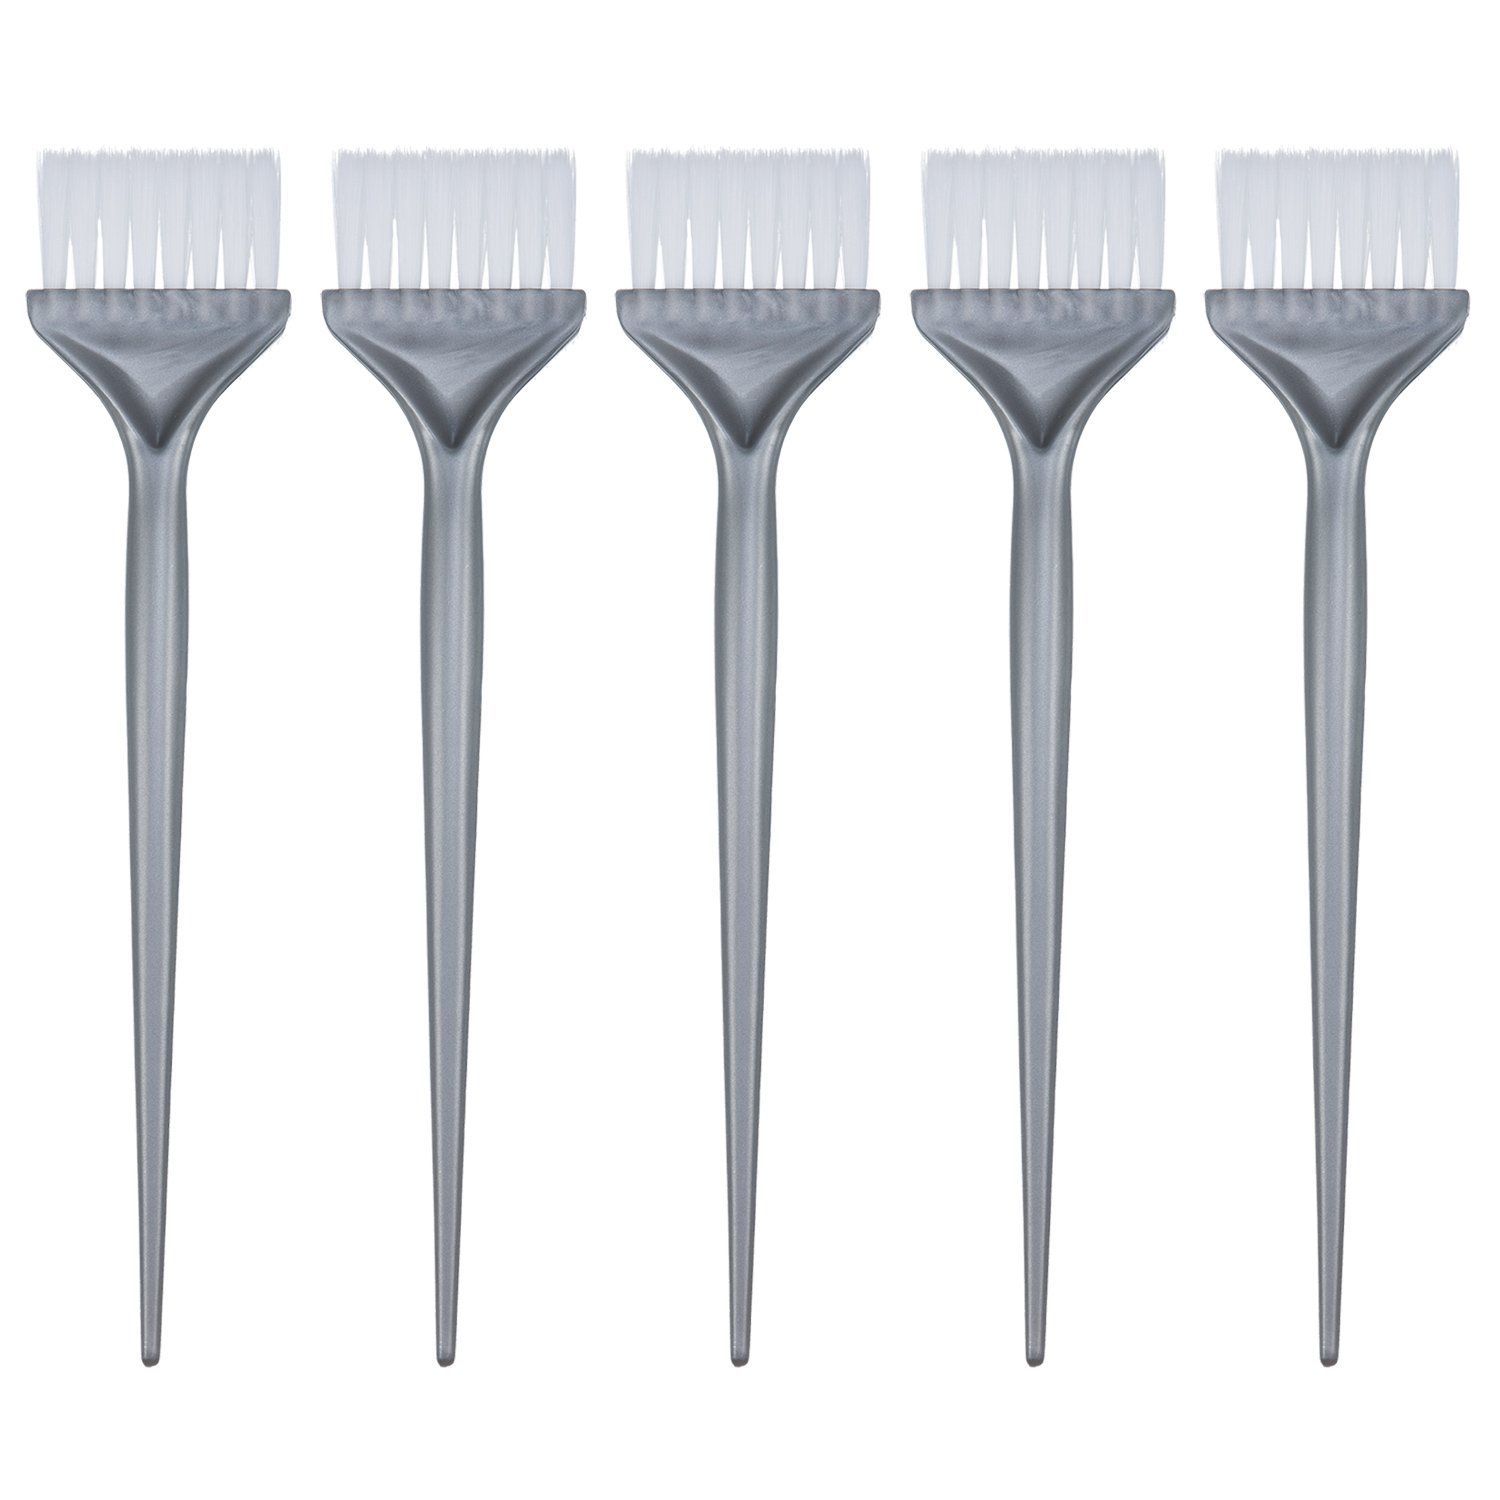 Mudder 5 Pack Hair Dye Coloring Brushes Hair Coloring Dyeing Kit Handle Salon Hair Bleach Tinting DIY Tool (Silver Grey) : Beauty